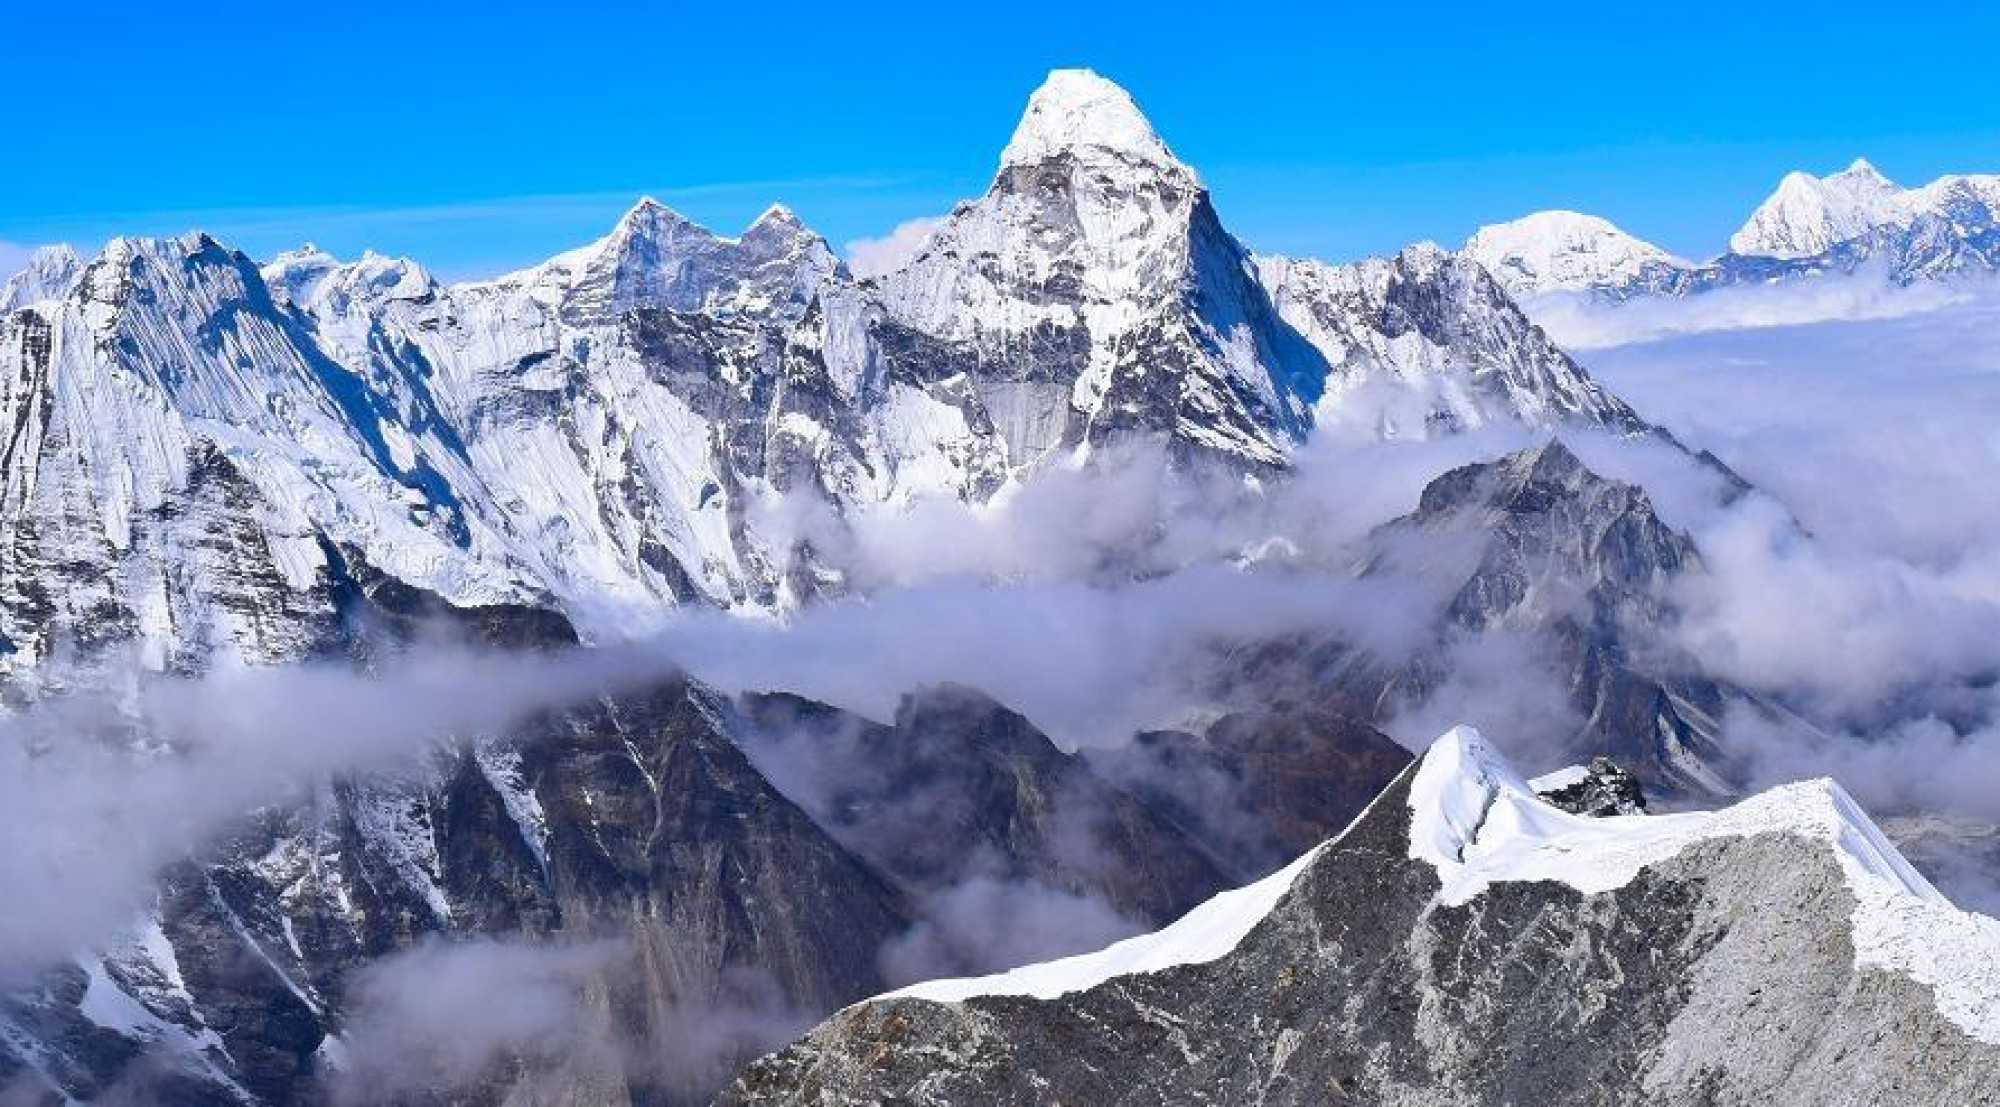 Island peak climbing with Gokyo chola pass everest base camp